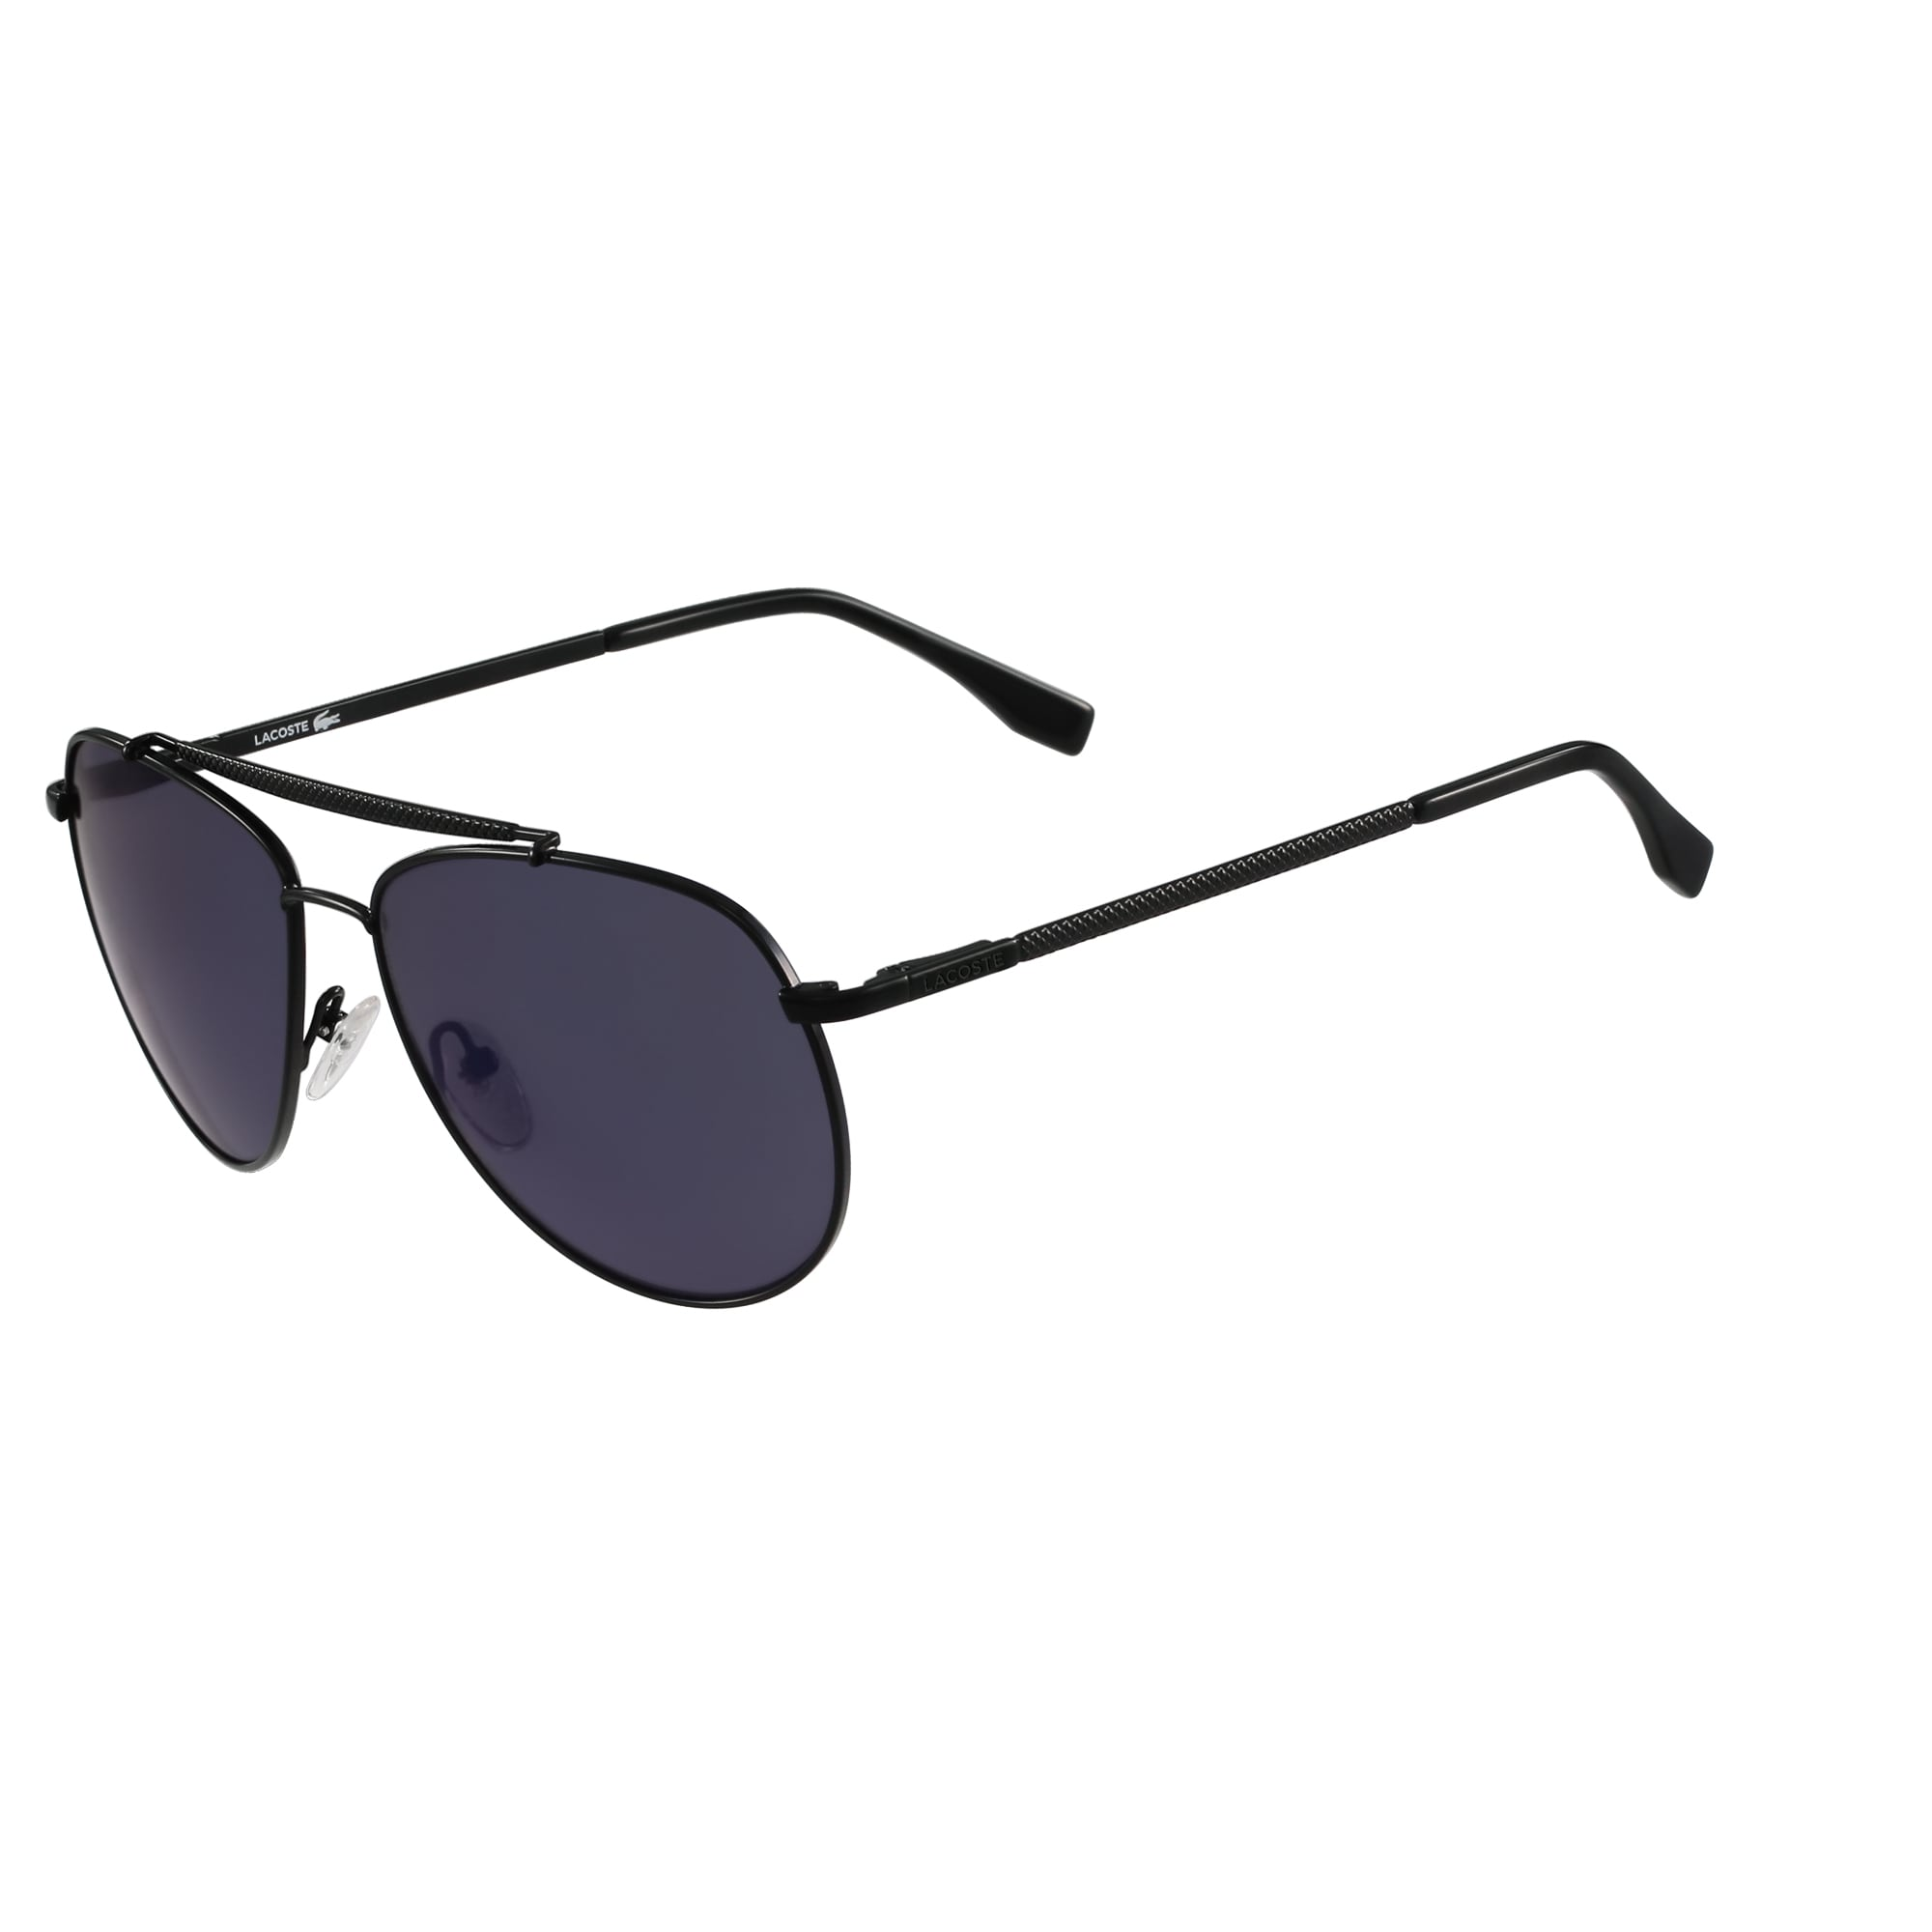 Men\'s Sunglasses | Accessories | LACOSTE